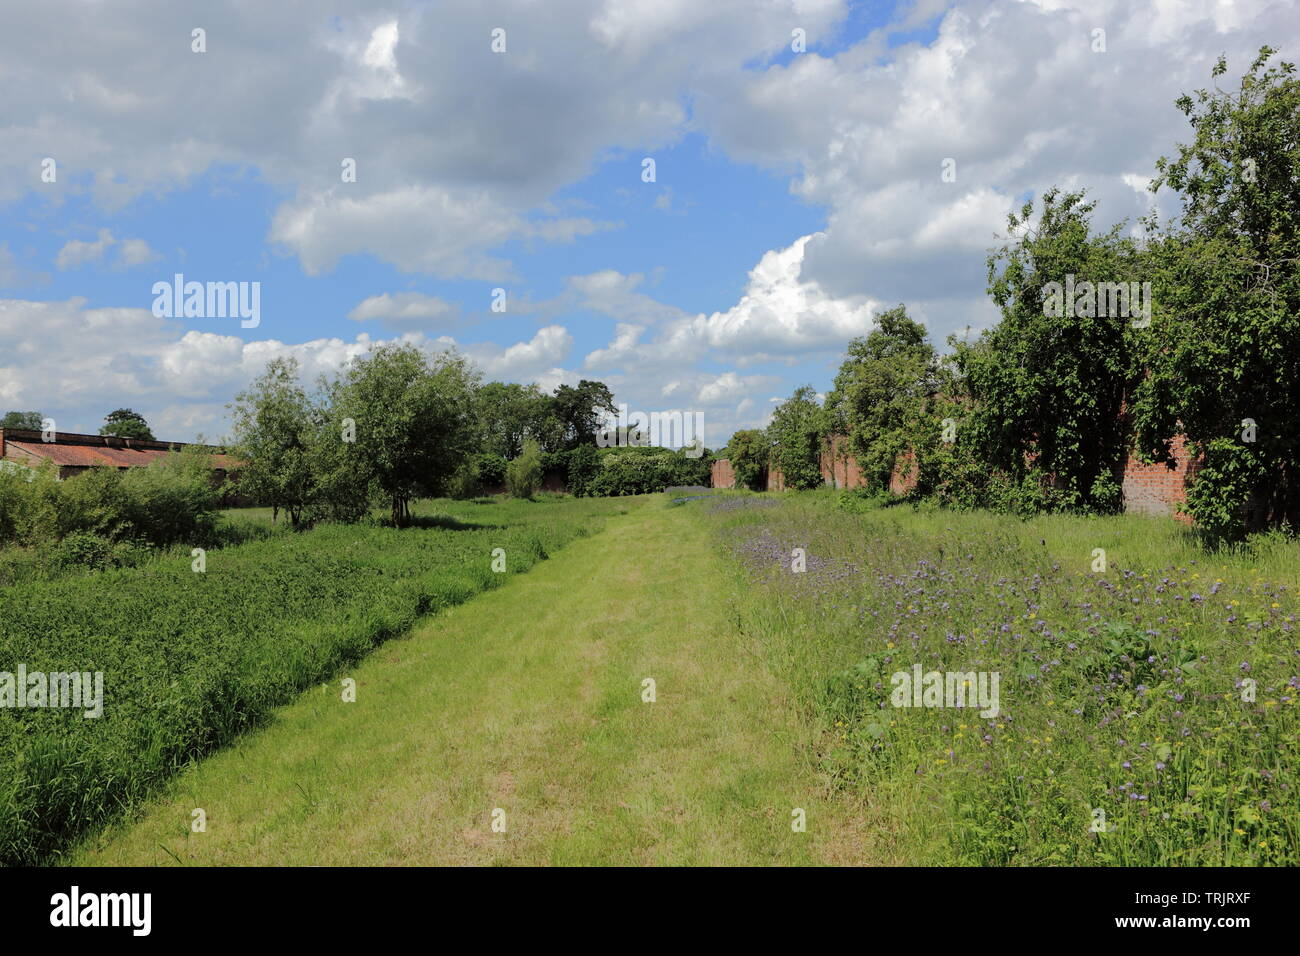 Fruit trees and flower meadows to attract wildlife in a walled garden in summertime - Stock Image